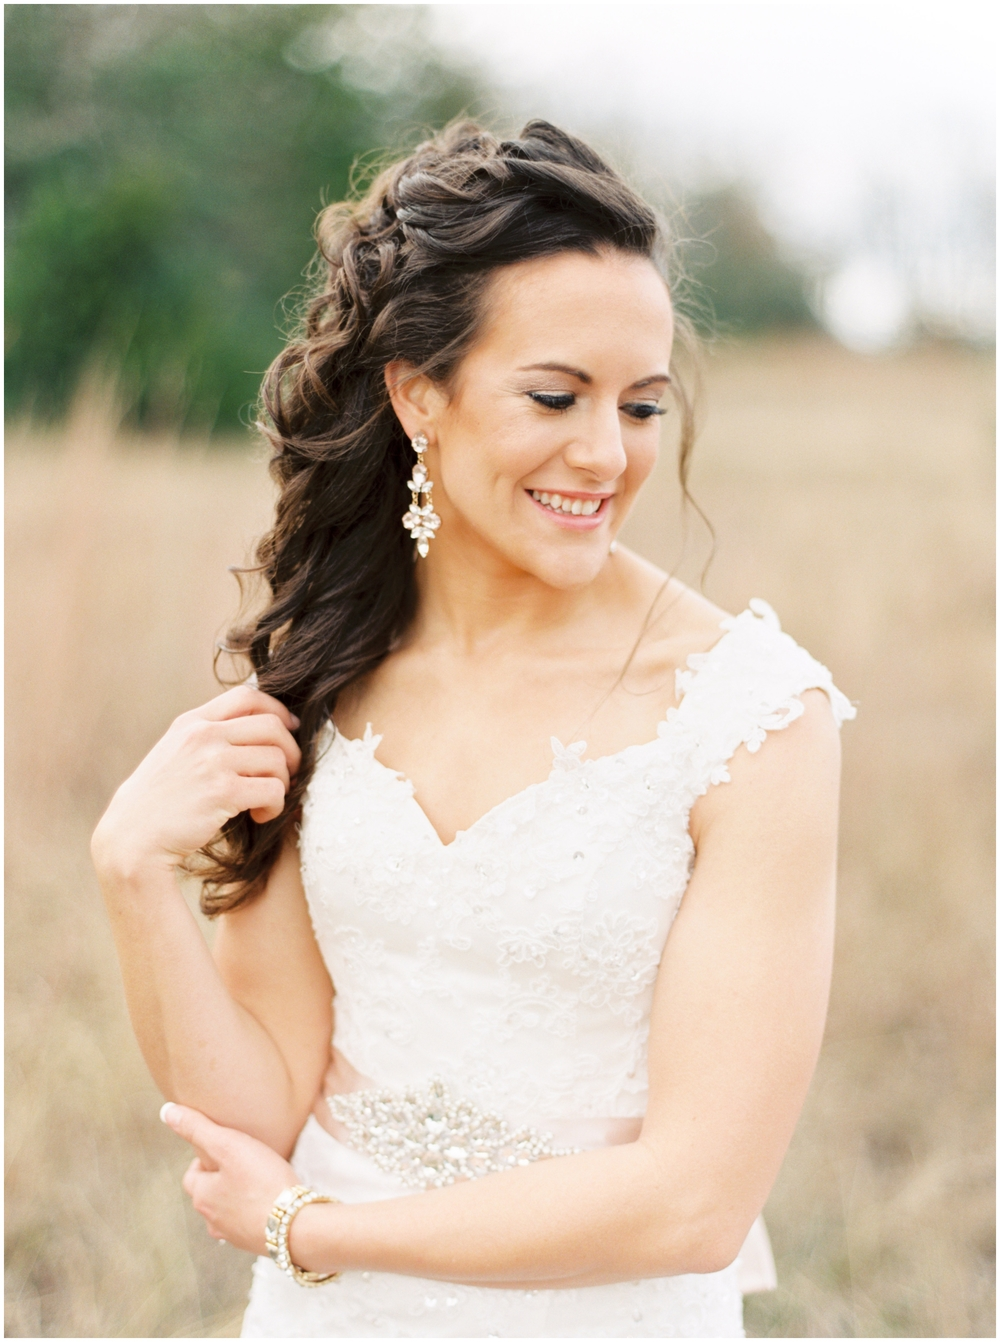 Sarah Best Photography - Emily's Bridals-127_STP.jpg